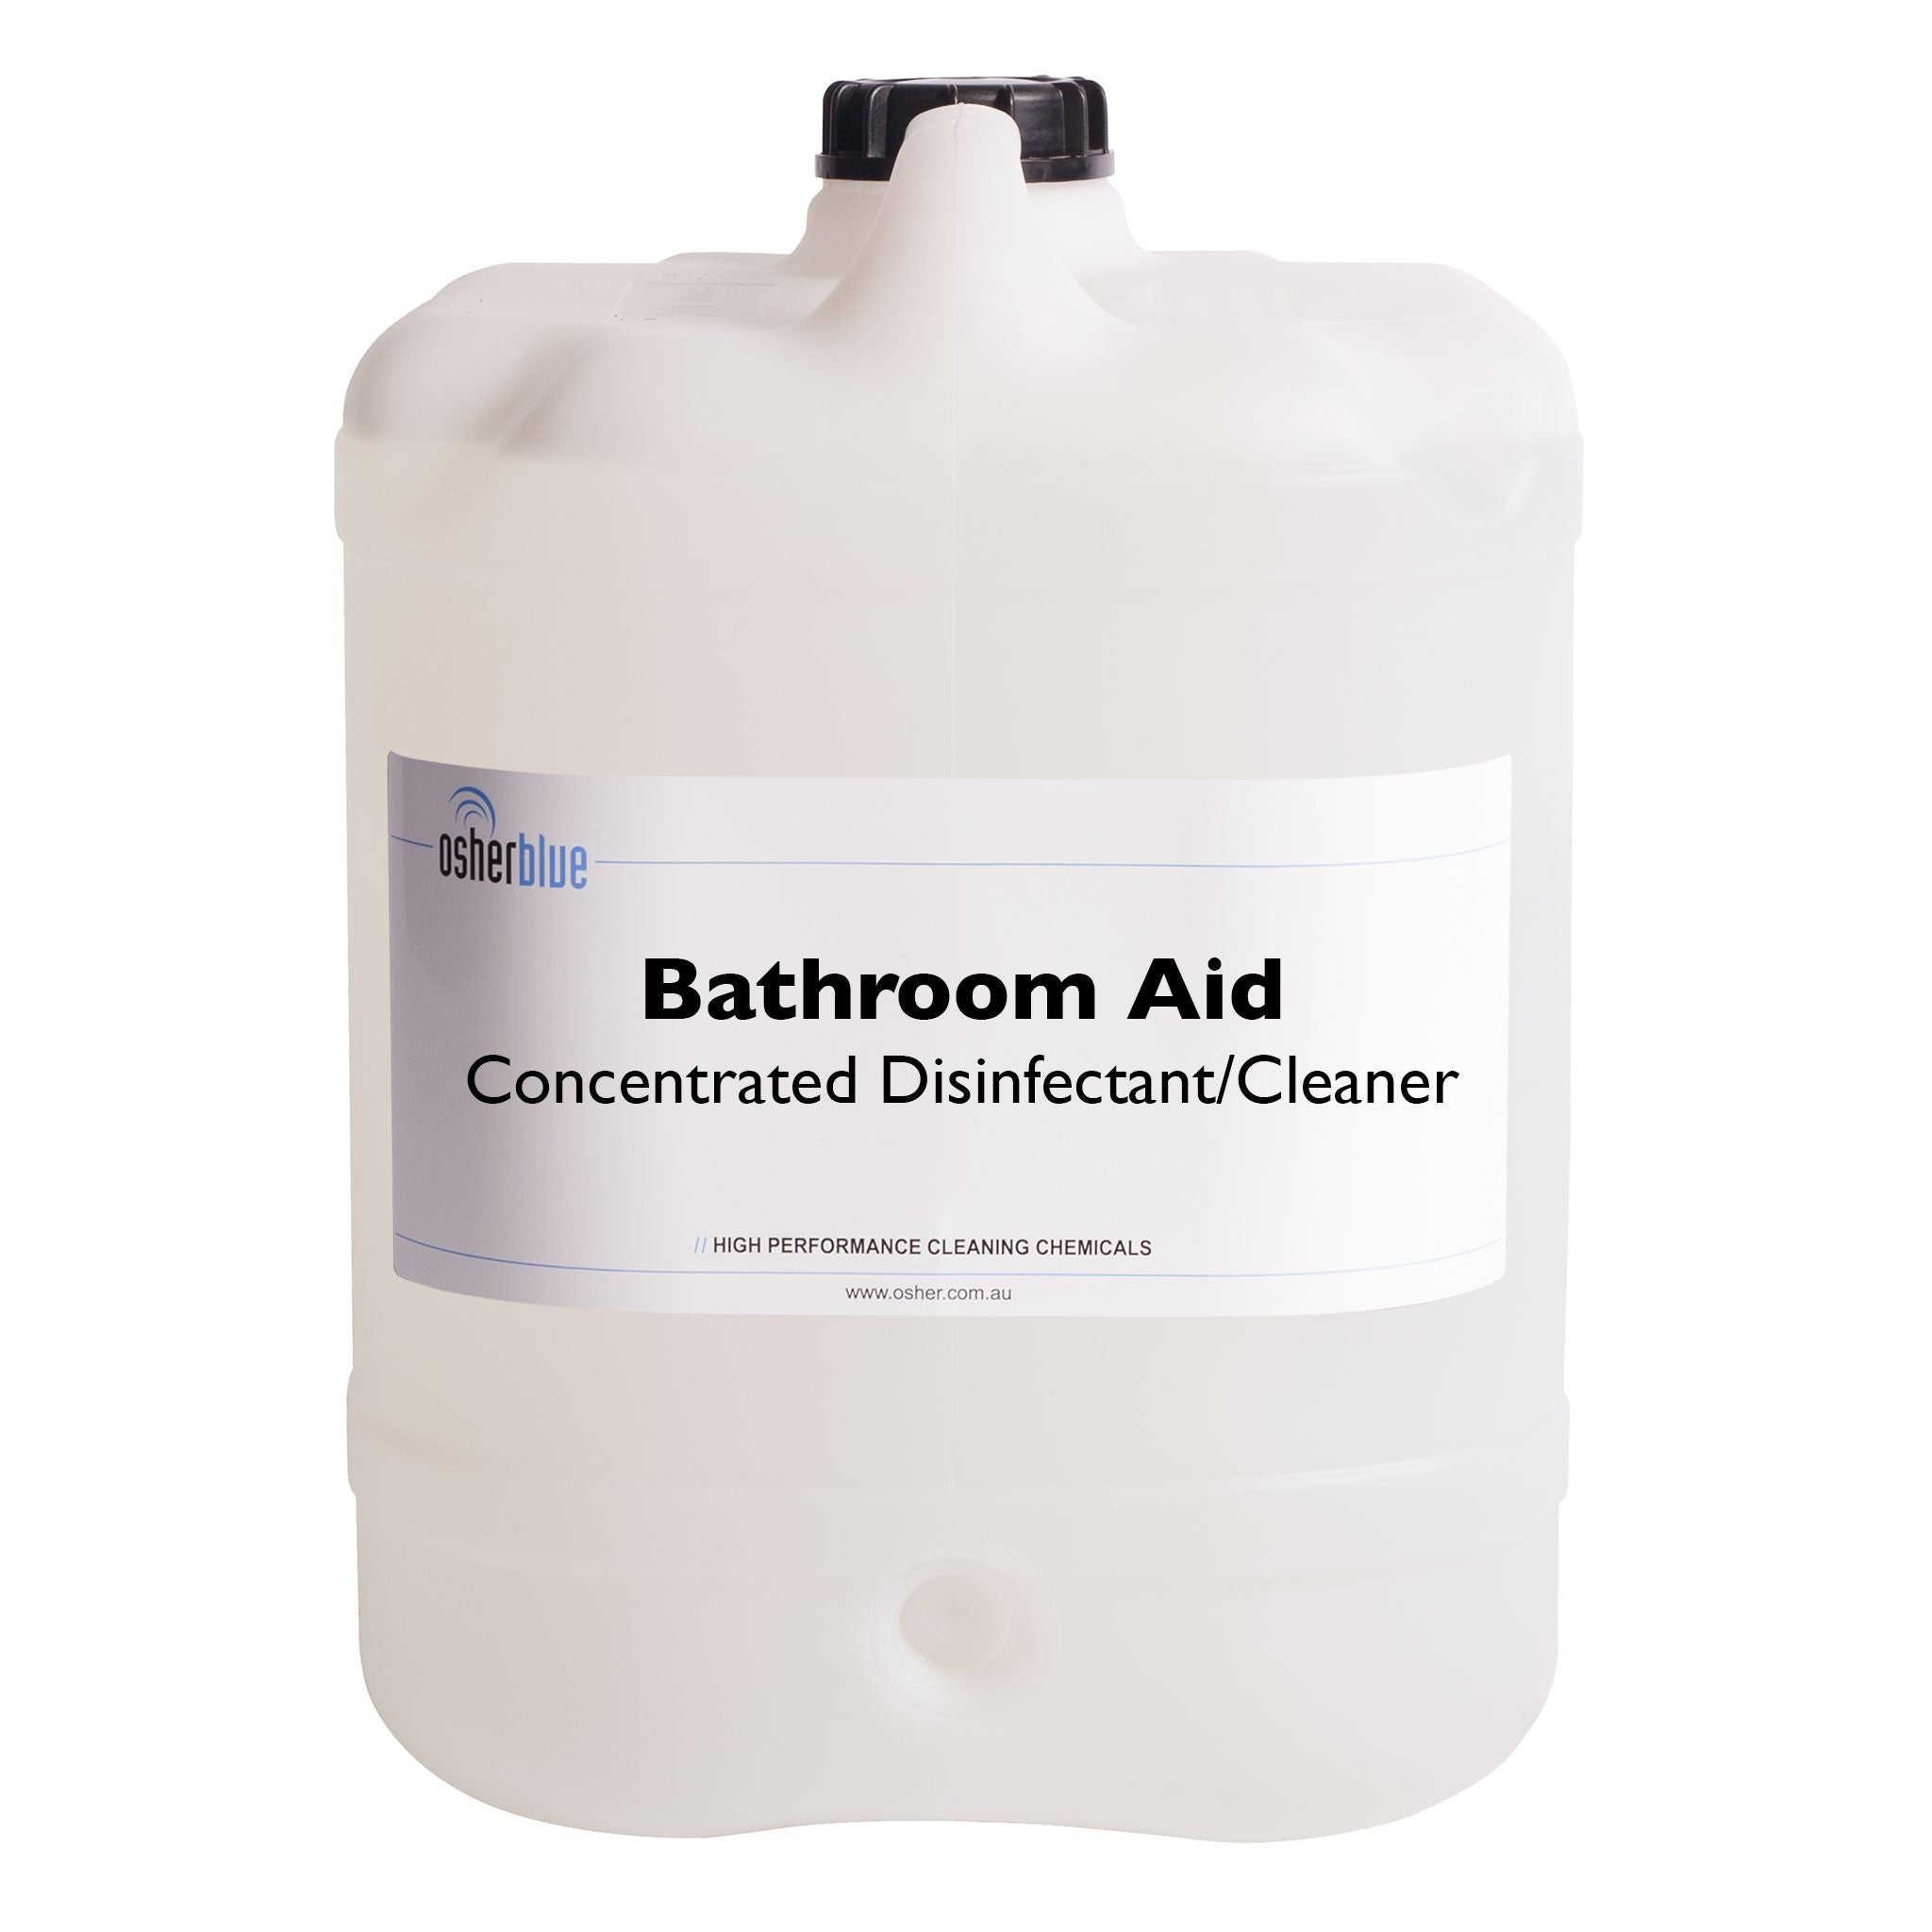 Bathroom Aid - Concentrated Disinfectant/Cleaner - Osher Blue